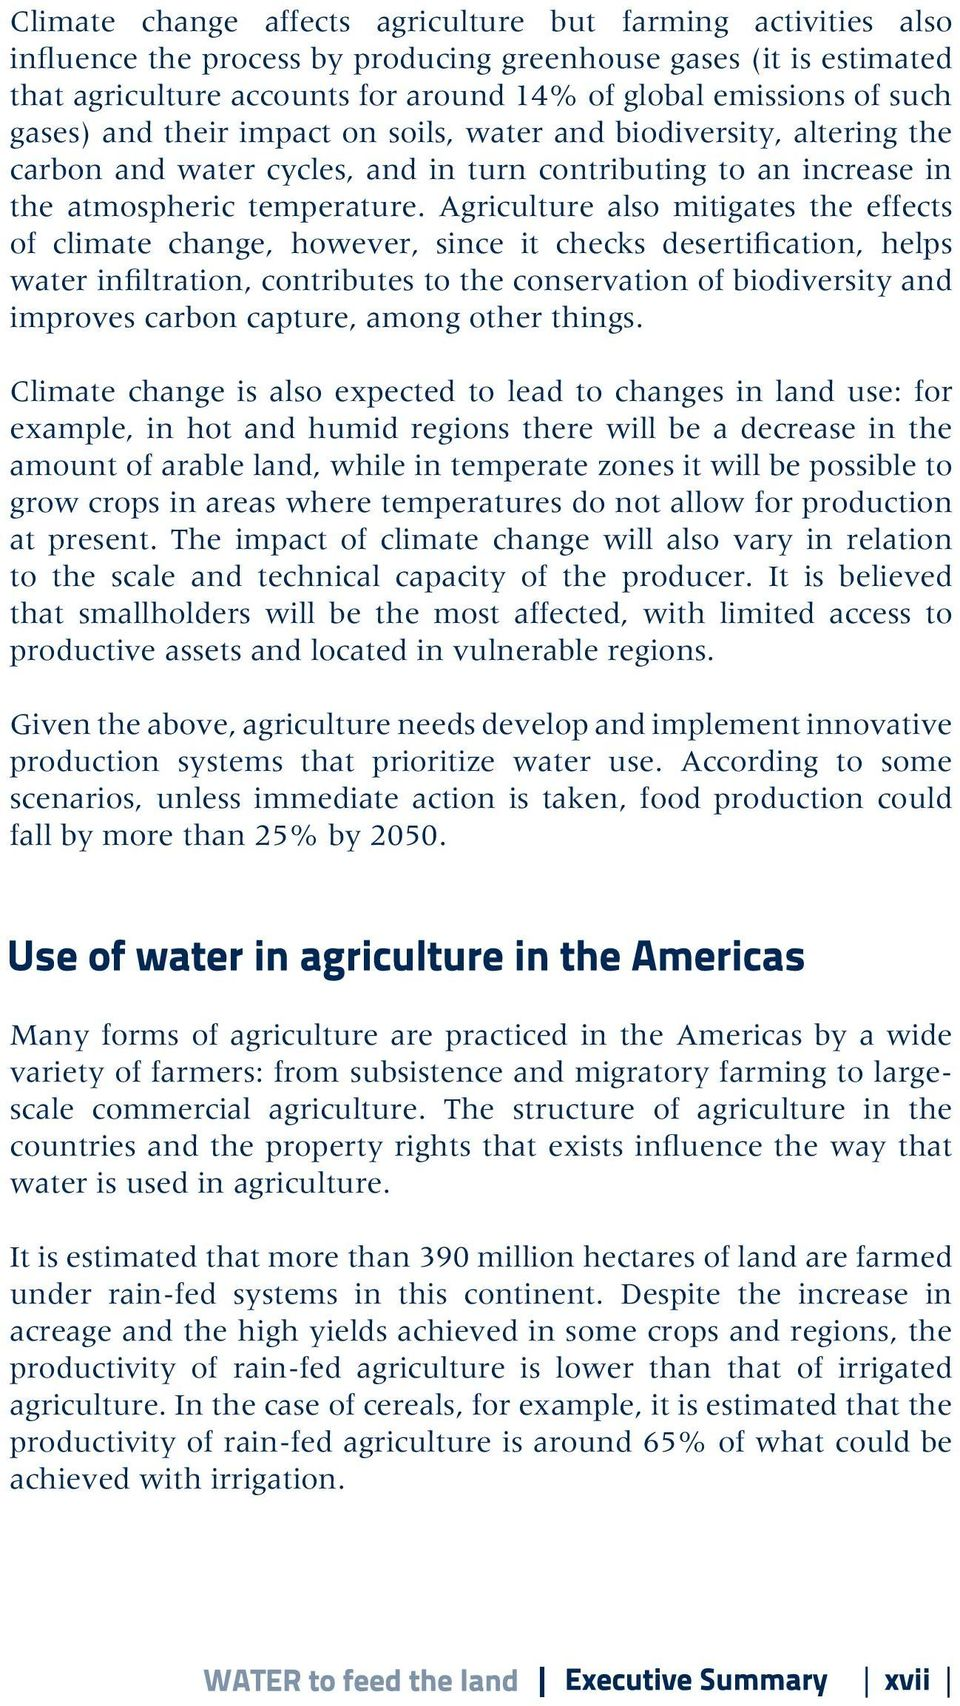 Agriculture also mitigates the effects of climate change, however, since it checks desertification, helps water infiltration, contributes to the conservation of biodiversity and improves carbon